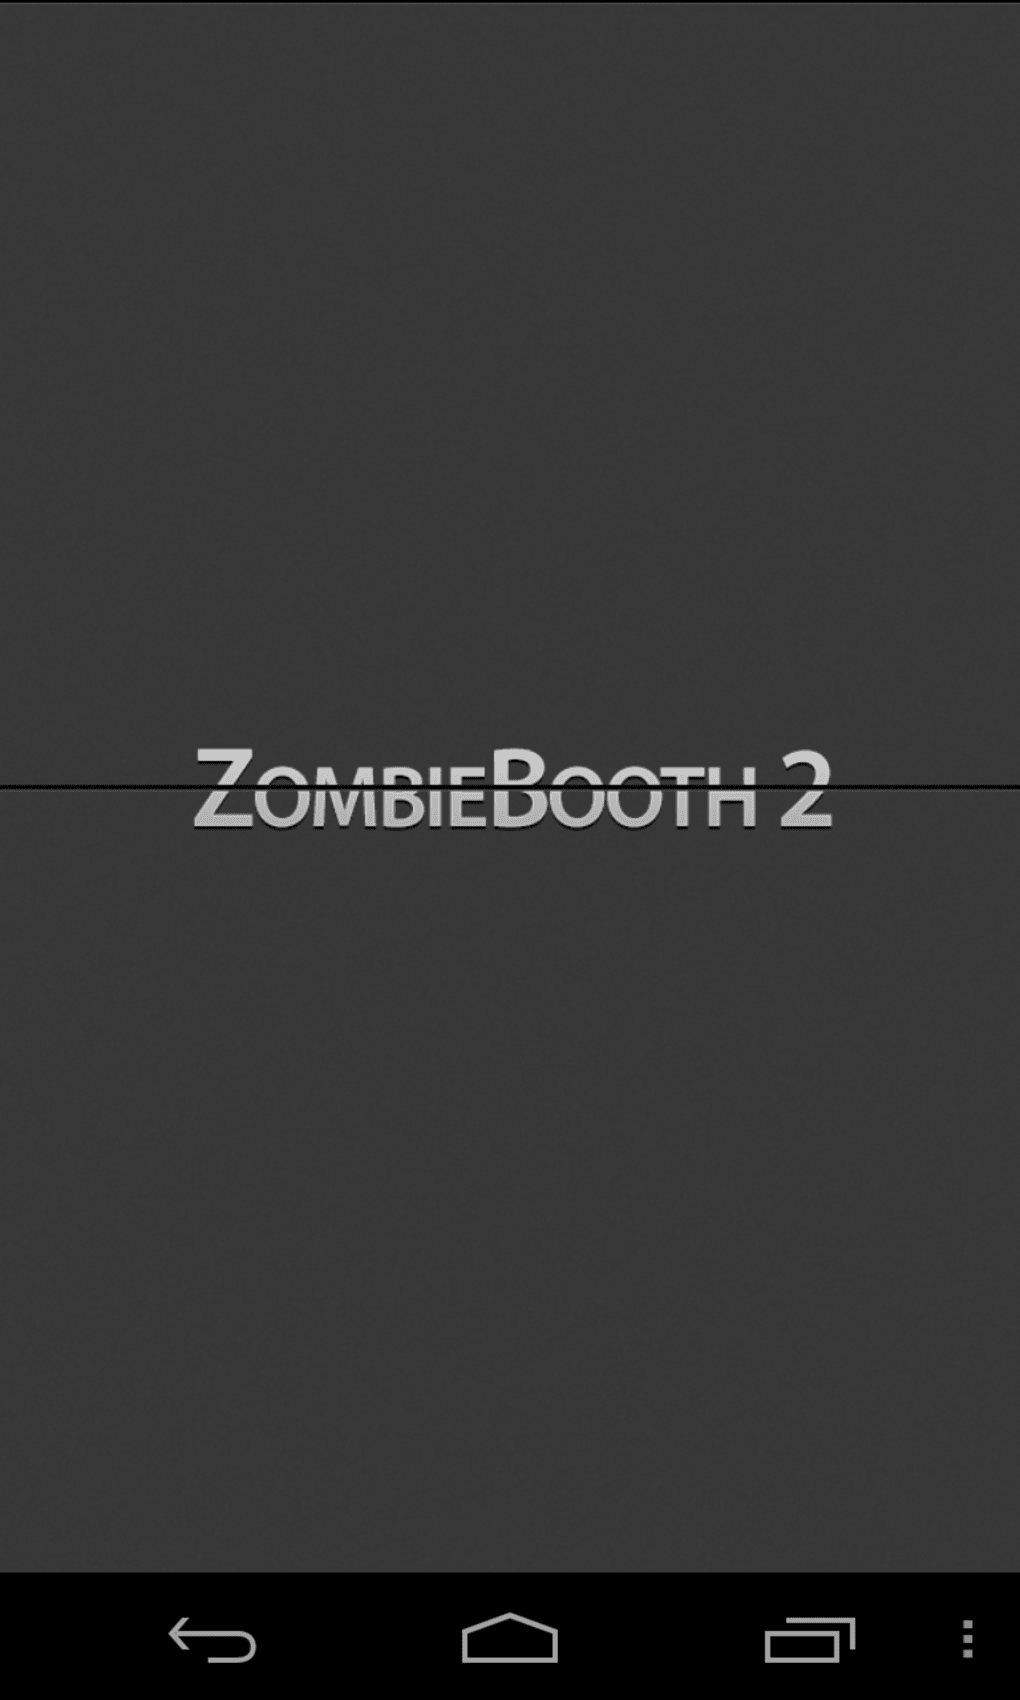 Zombiebooth 2 apk mod unlock all | android apk mods.